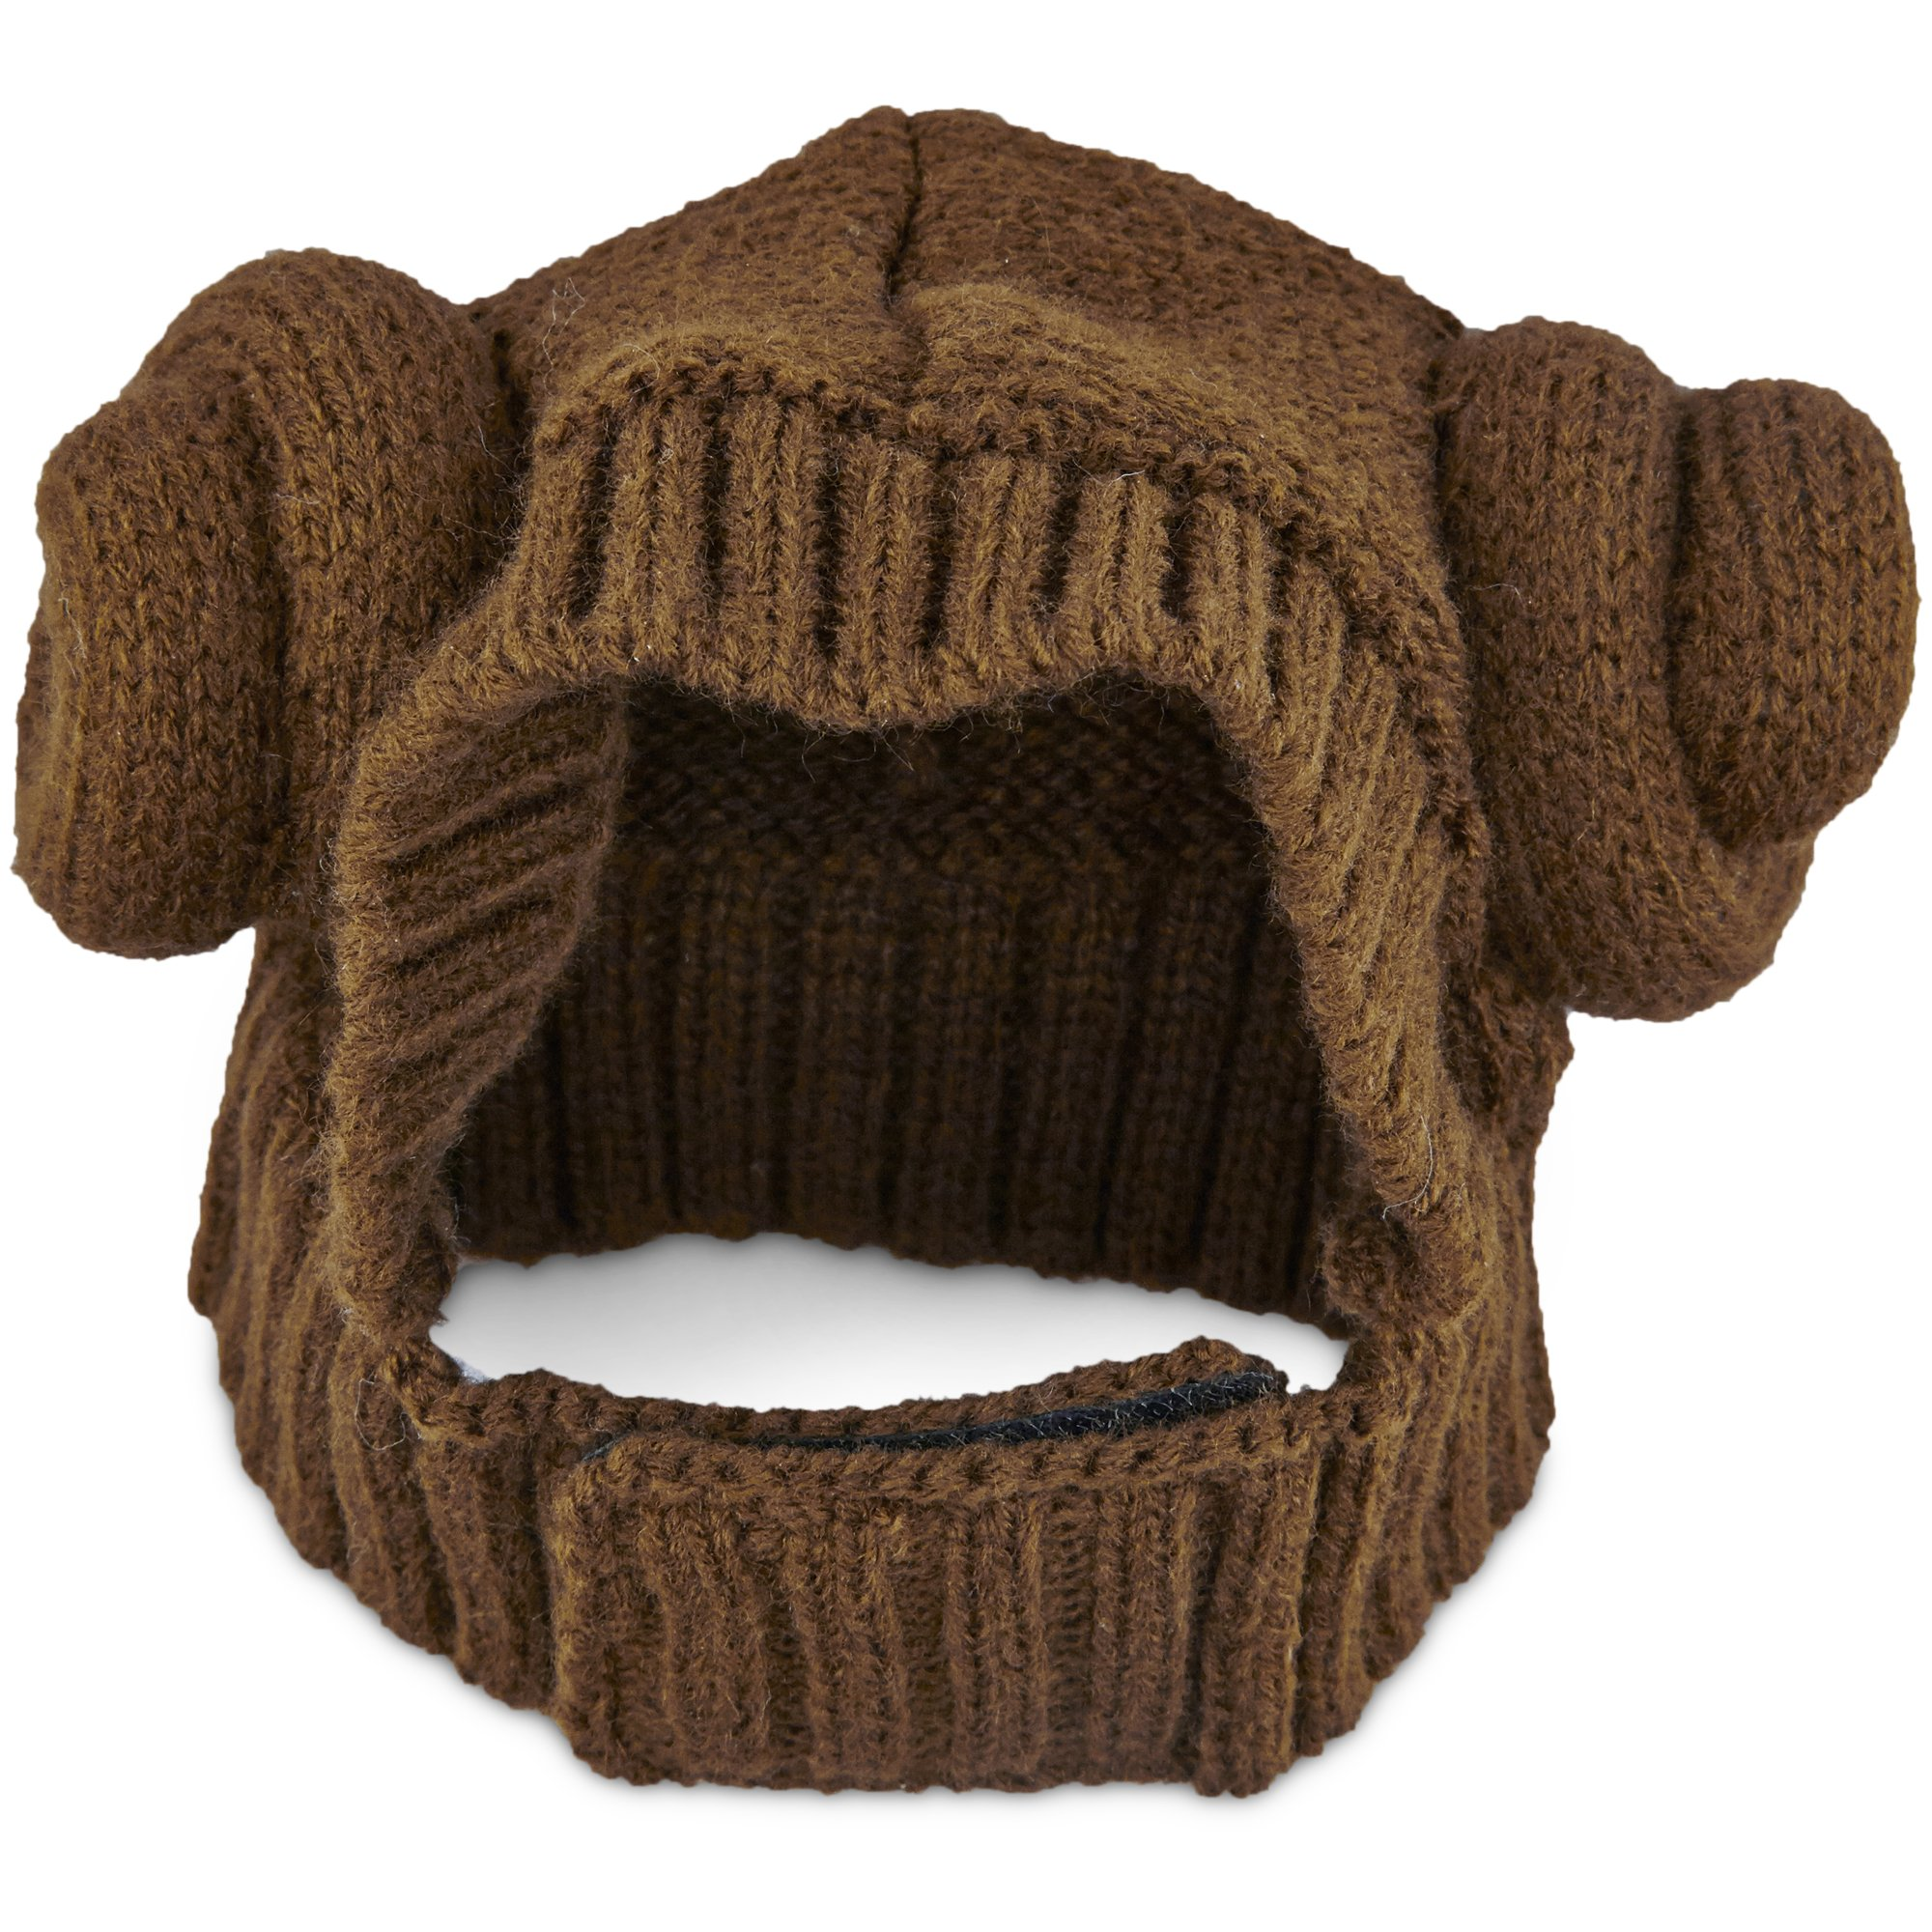 Star Wars Knit Princess Leia Buns Pet Hat  sc 1 st  Petco & Dog Costumes: Funny Costumes for Dogs u0026 Puppies | Petco